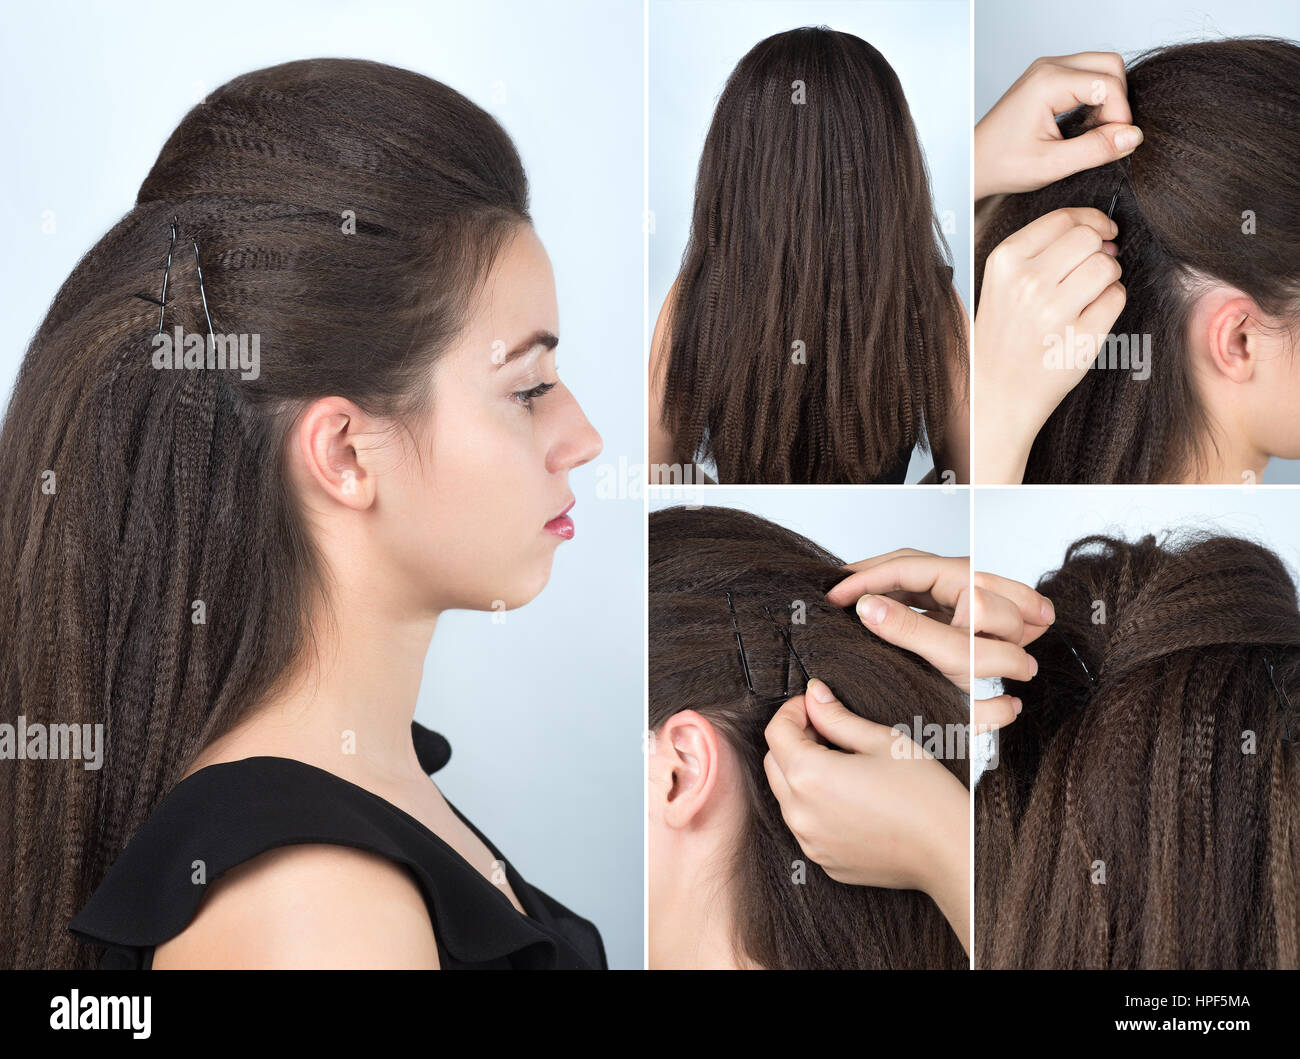 Fashionable Volume Hairstyle With Ripple Curly Hair Hairstyle For